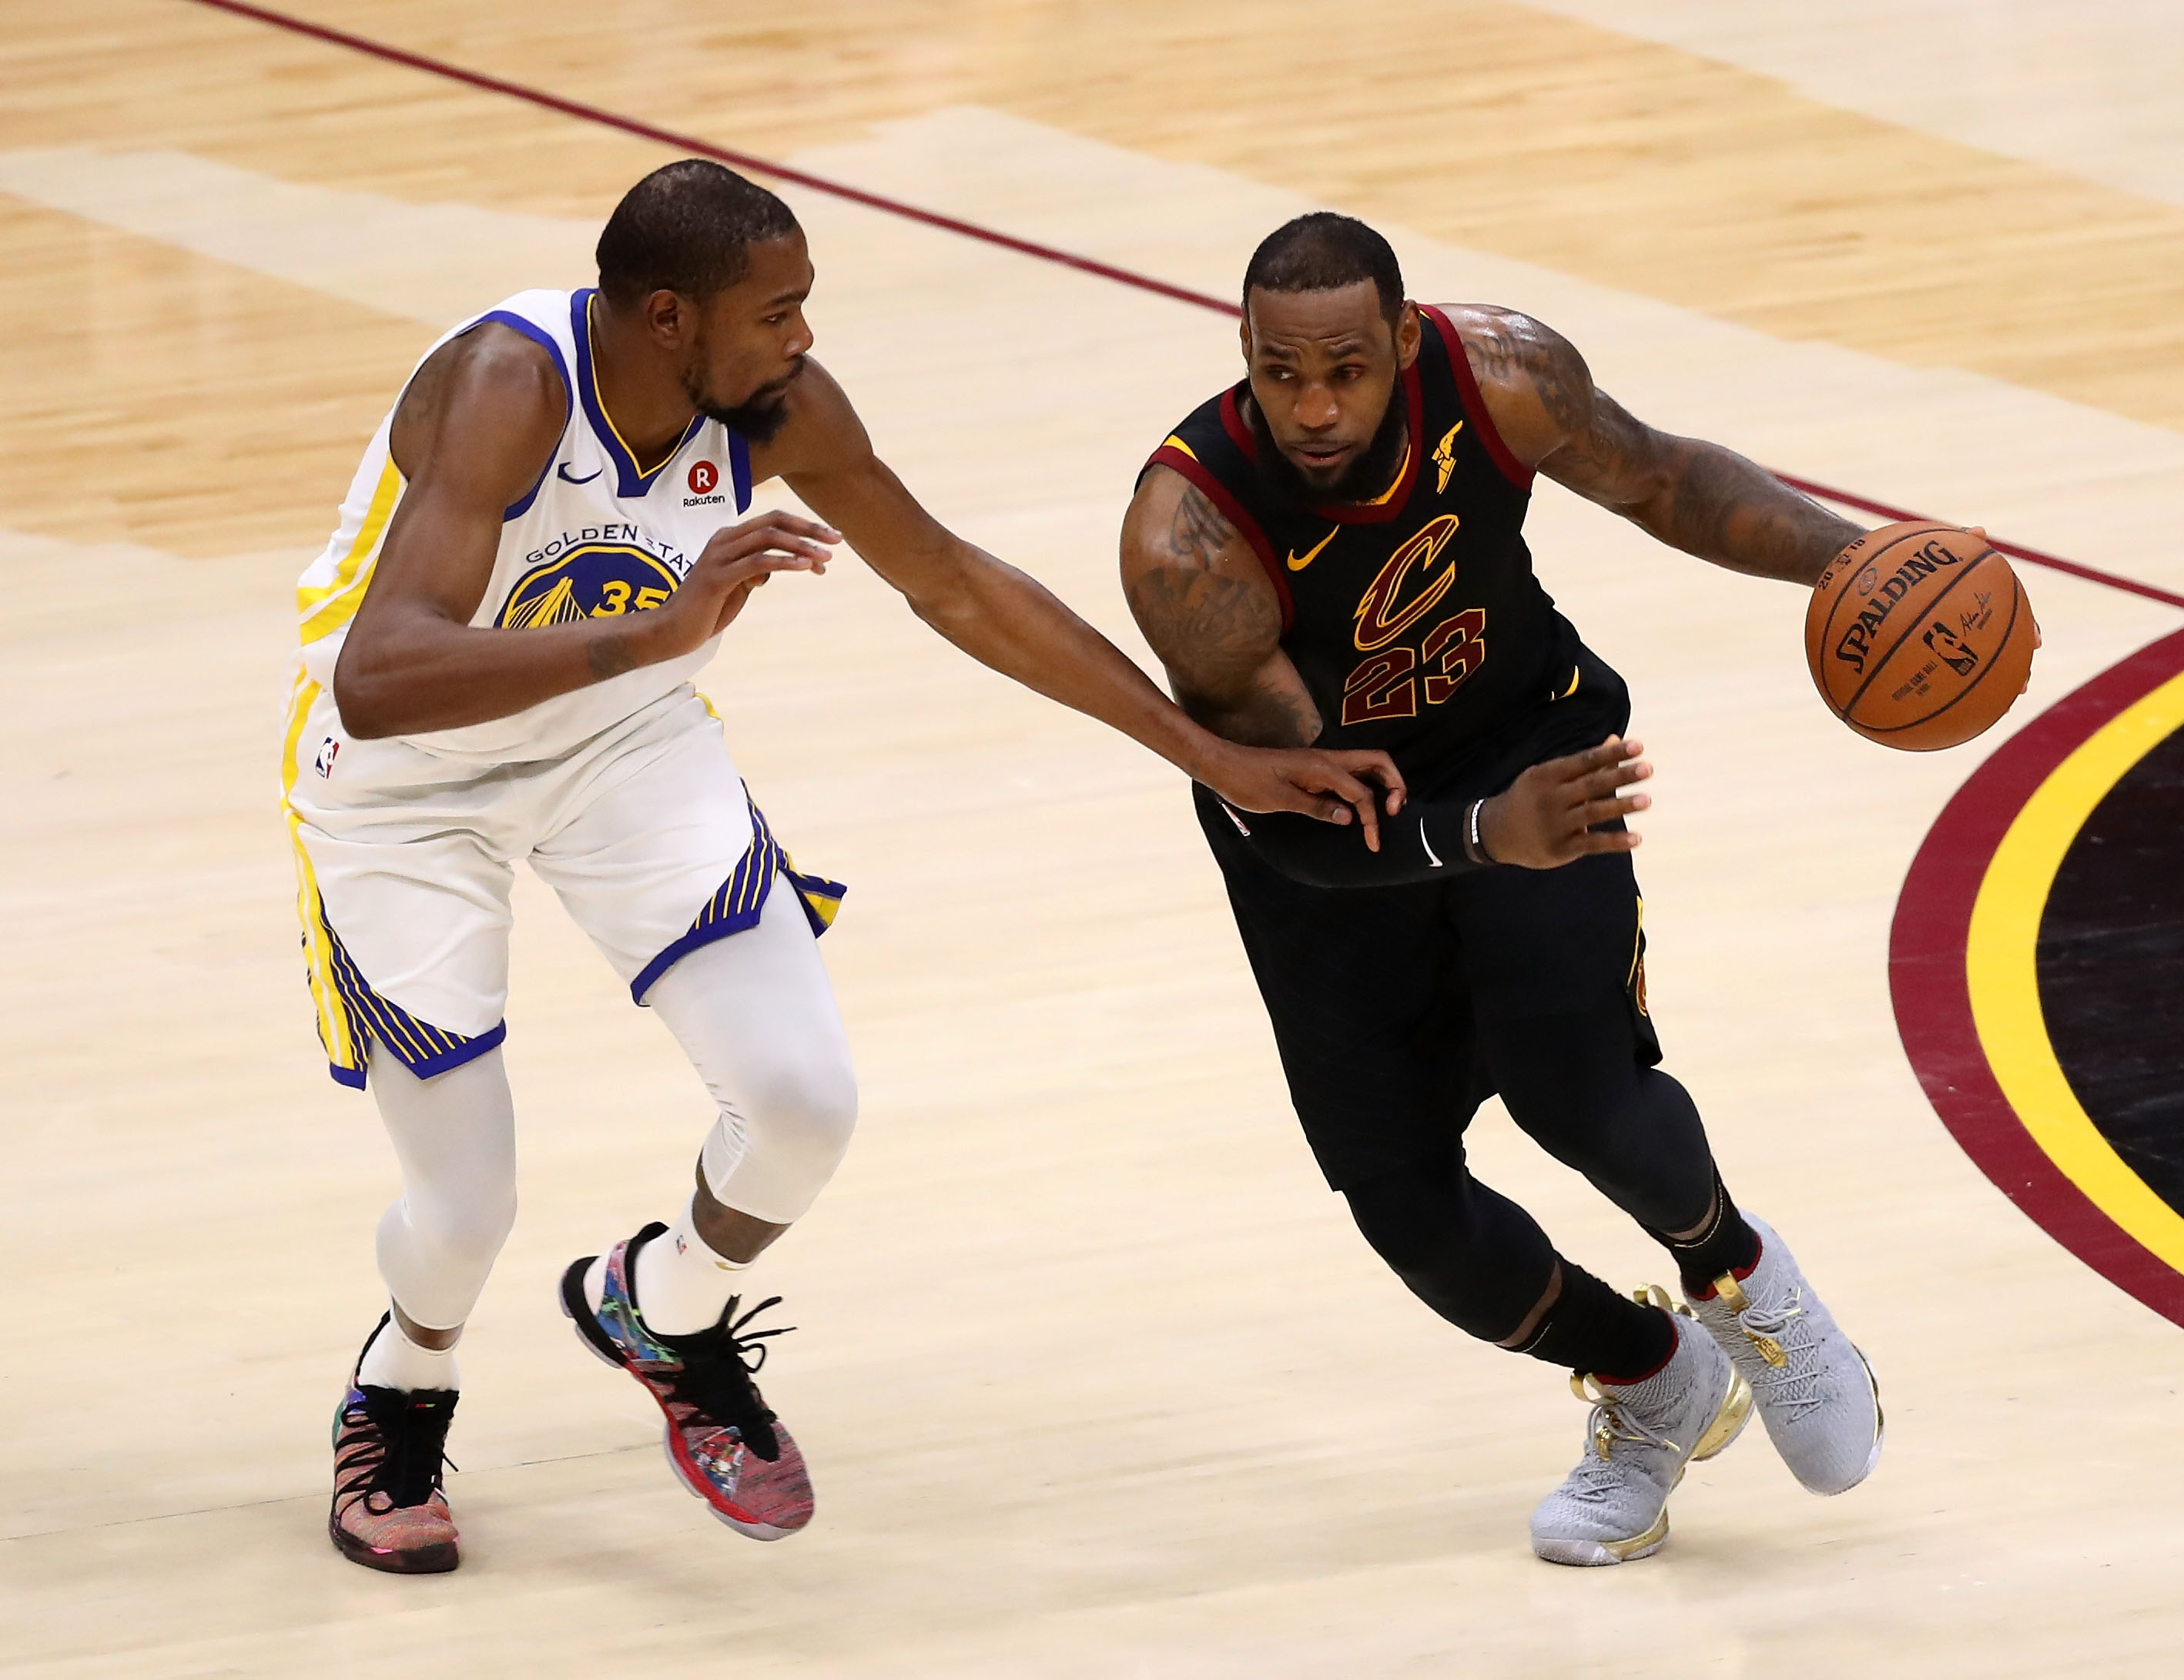 NBA Finals 2018: Cavs vs. Warriors Game 4 Updates